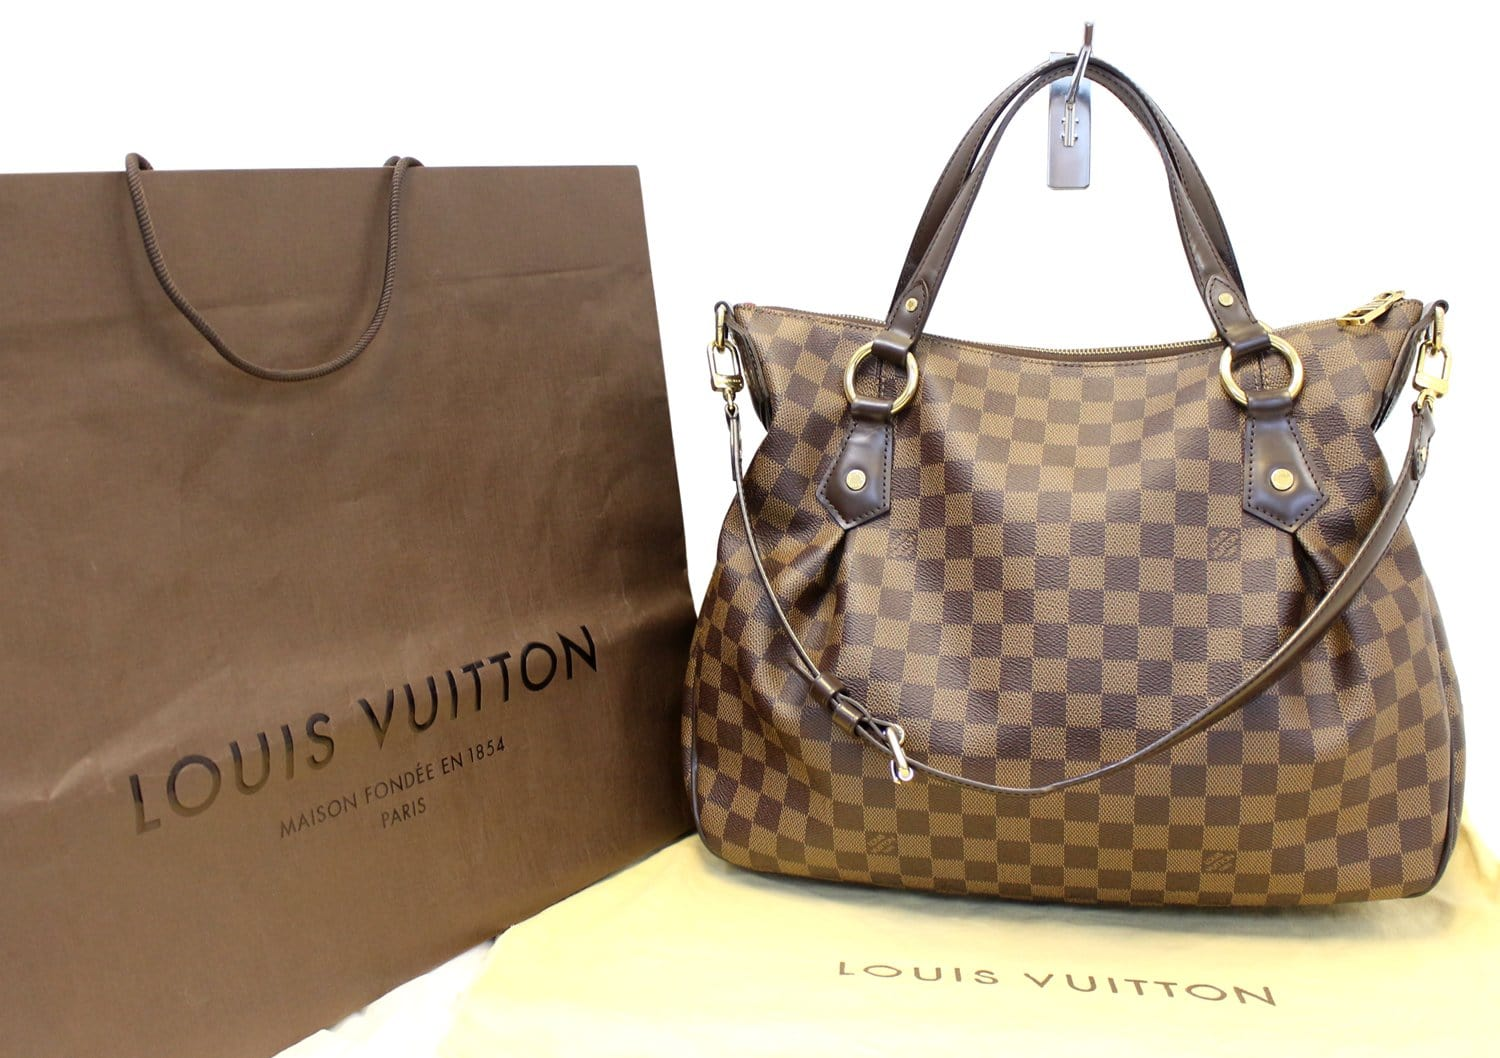 13f379527d84 LOUIS VUITTON Evora MM Damier Ebene Tote Shoulder Bag